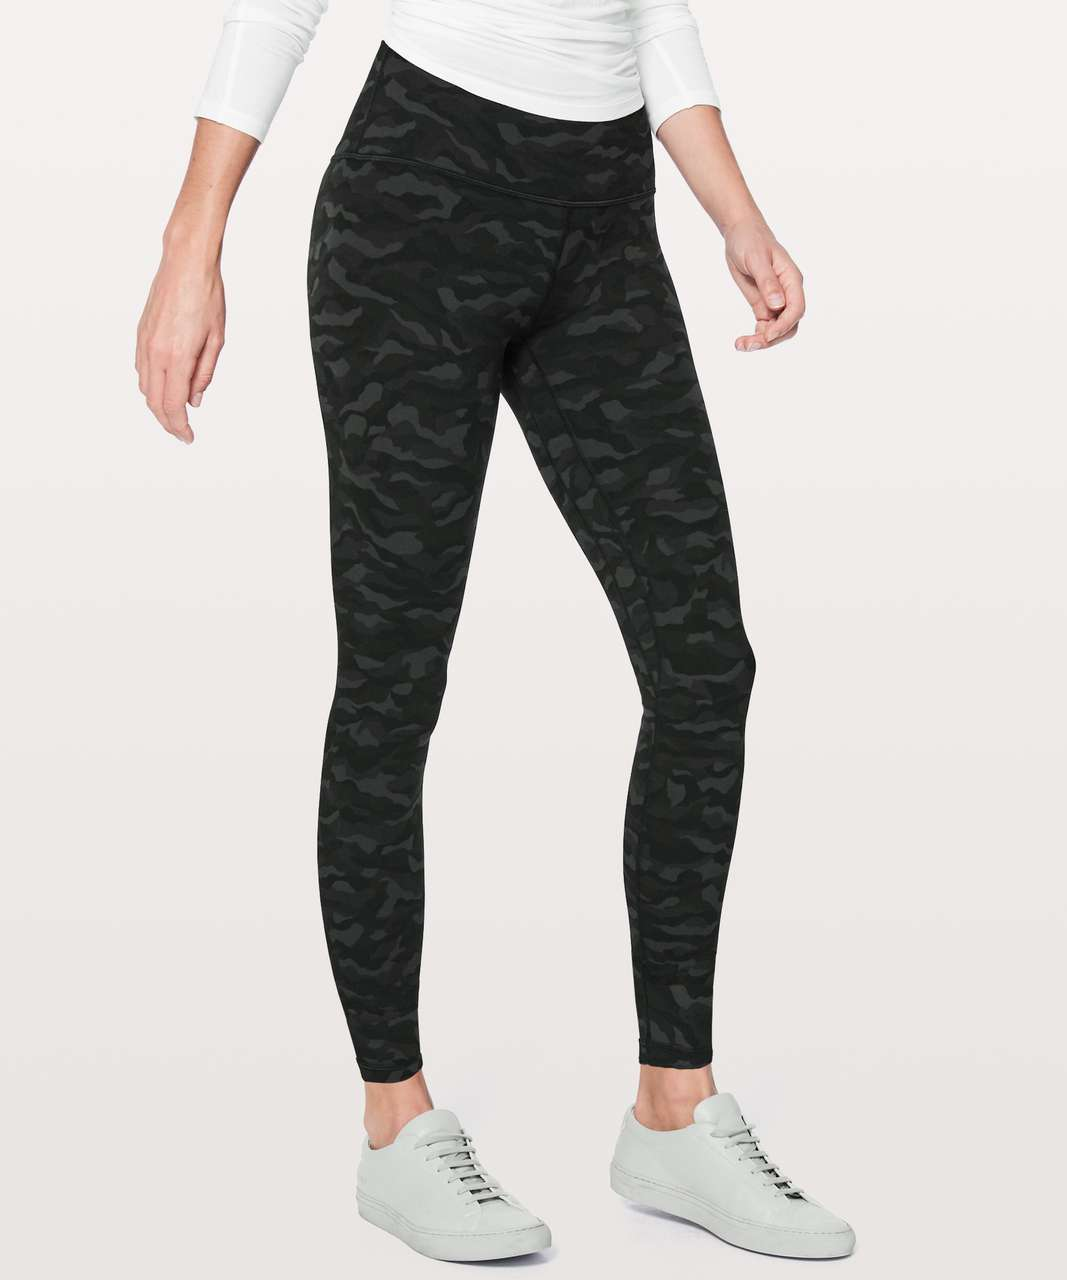 "Lululemon Align Pant *Full Length 28"" - Sequoia Camo Print Deep Coal Black"